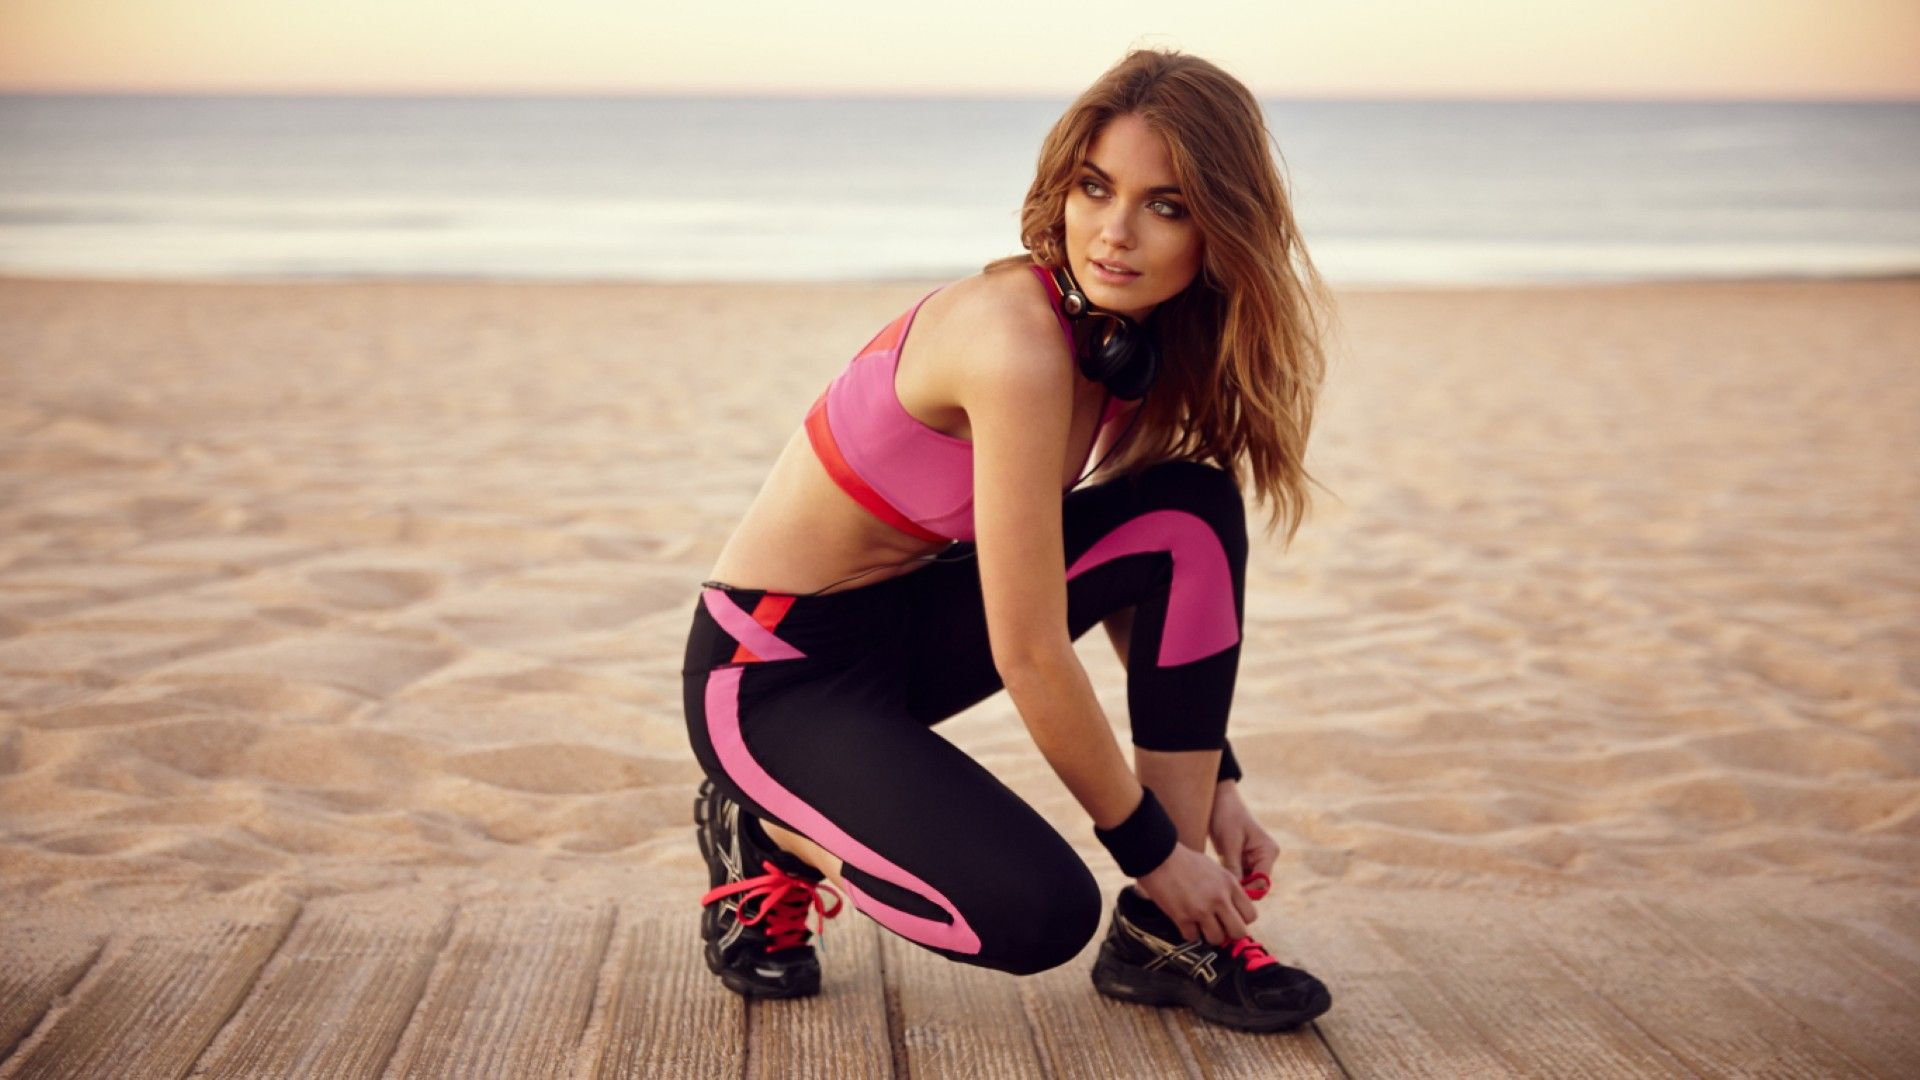 Fitness Wallpapers, 33 Fitness High Quality Image, Desktop